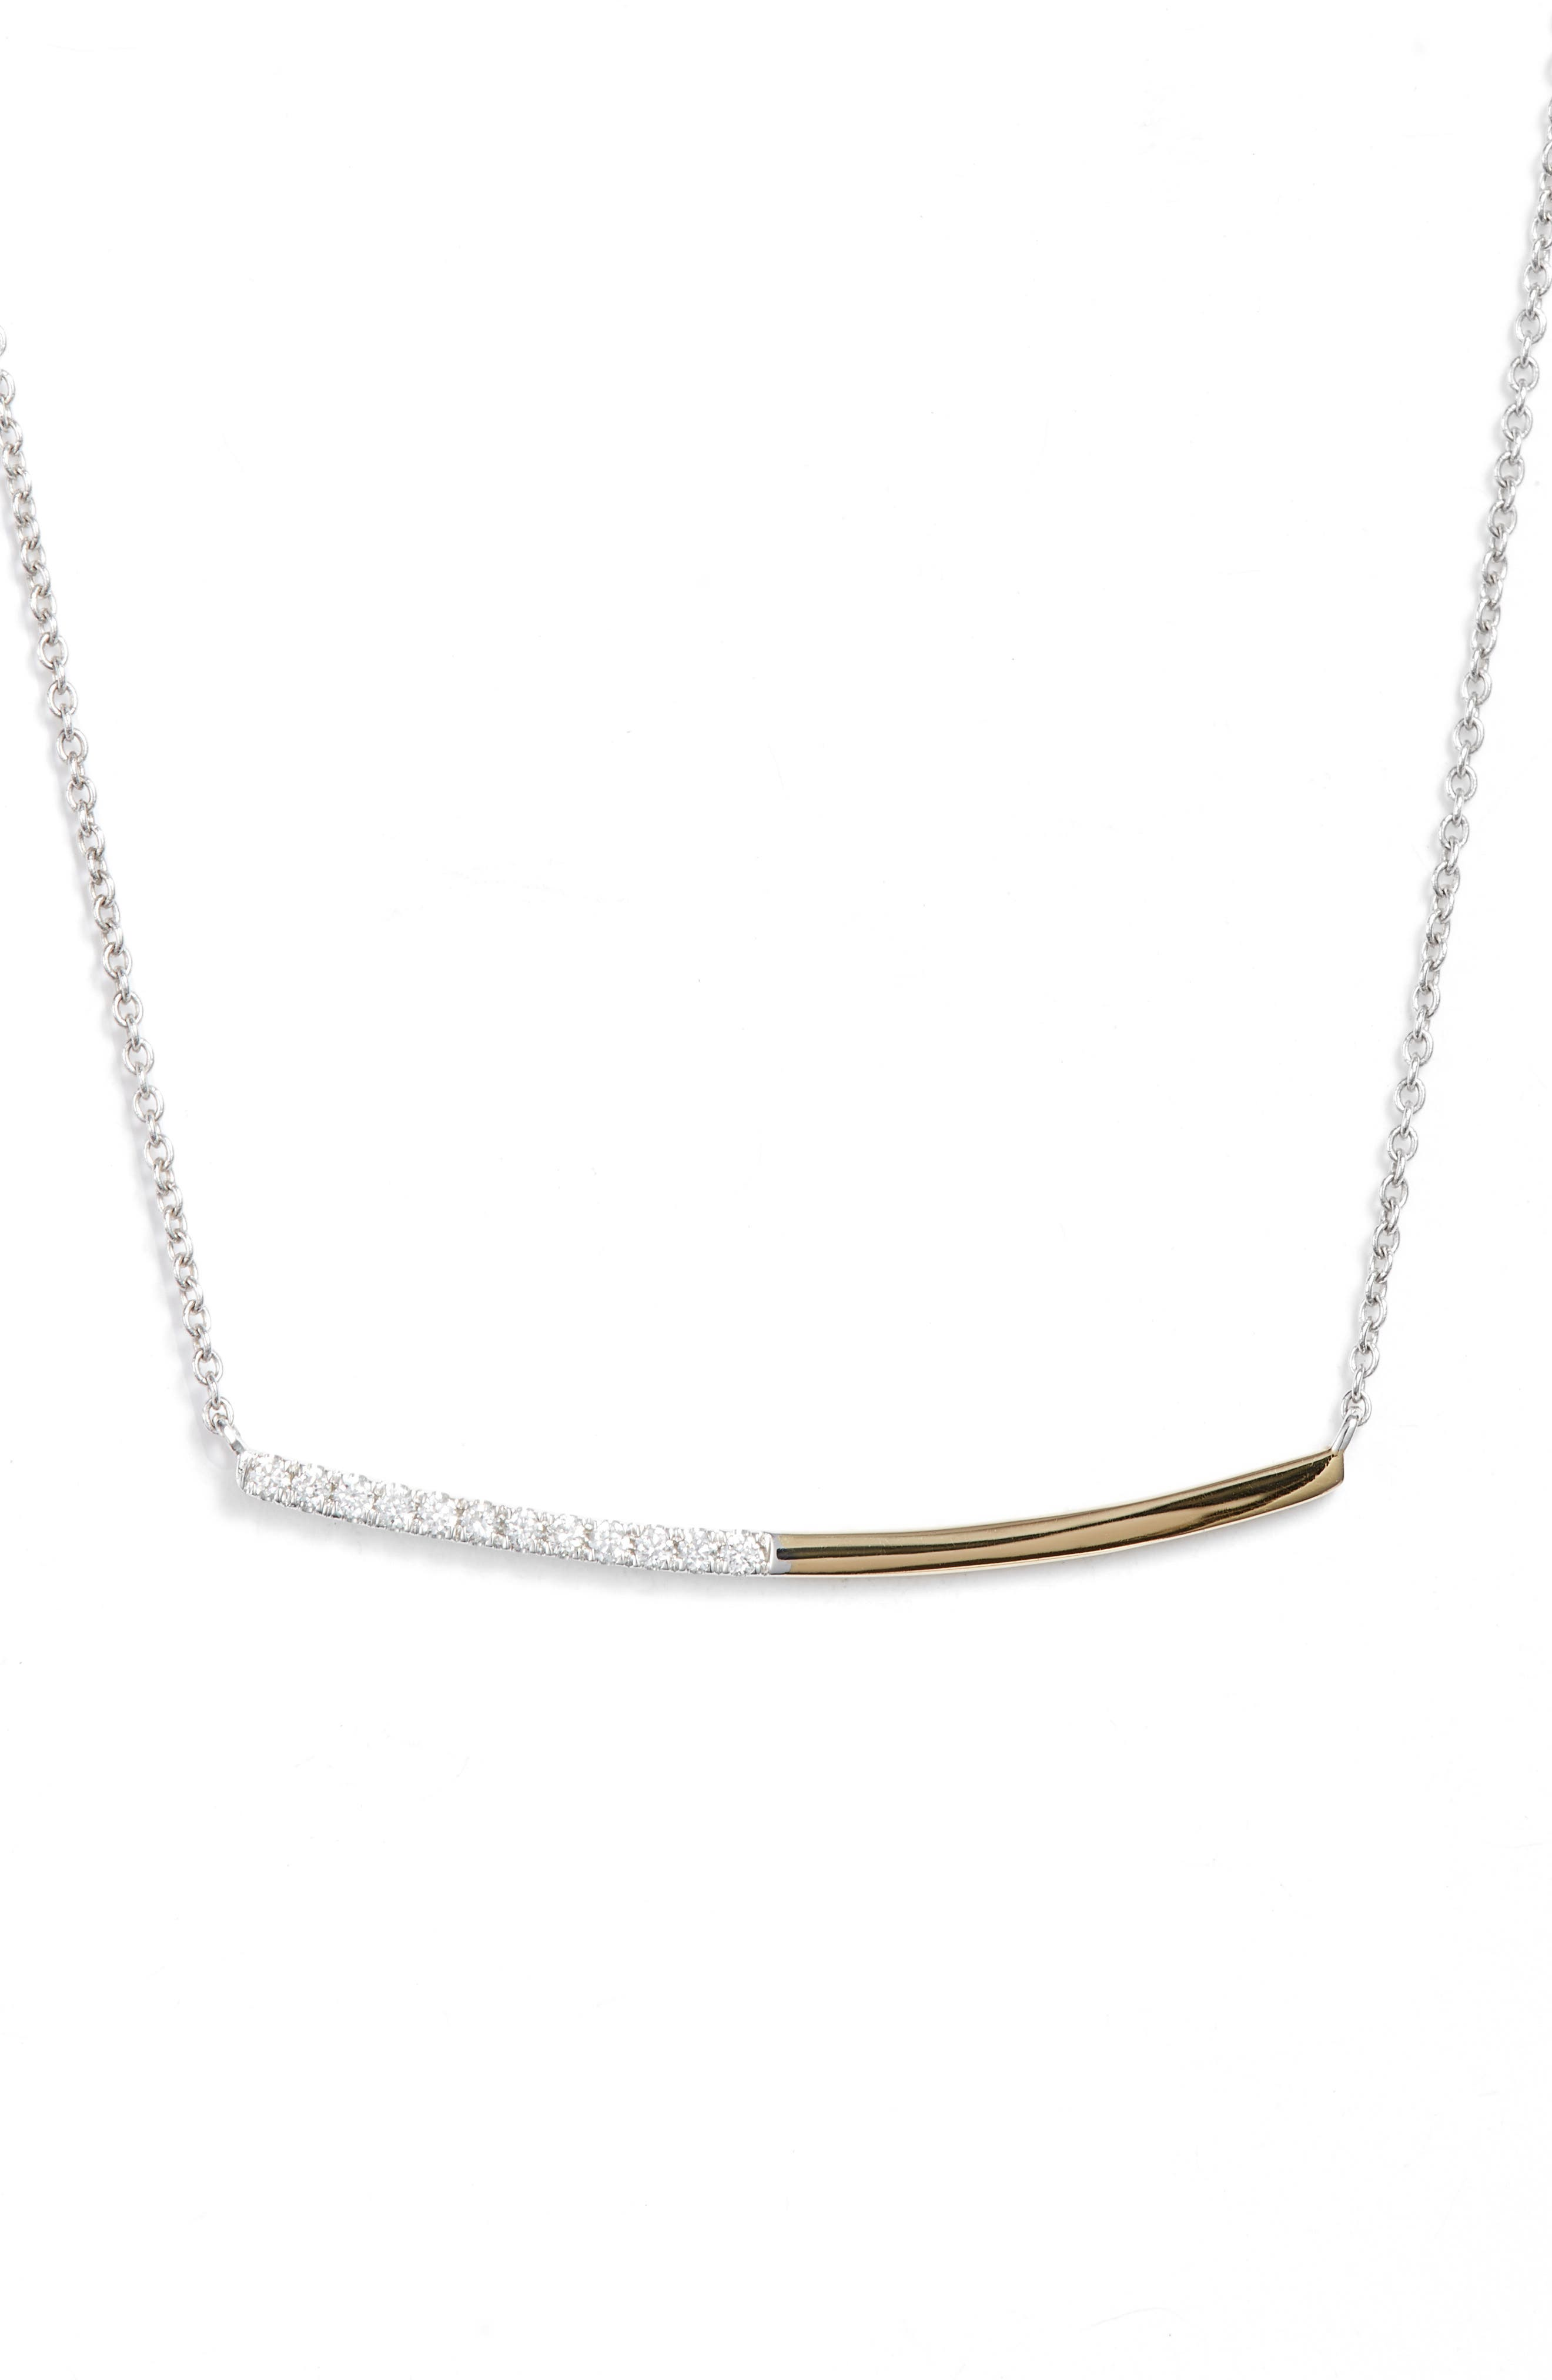 Two-Tone Curved Diamond Bar Neck,                         Main,                         color, YELLOW GOLD/ WHITE GOLD